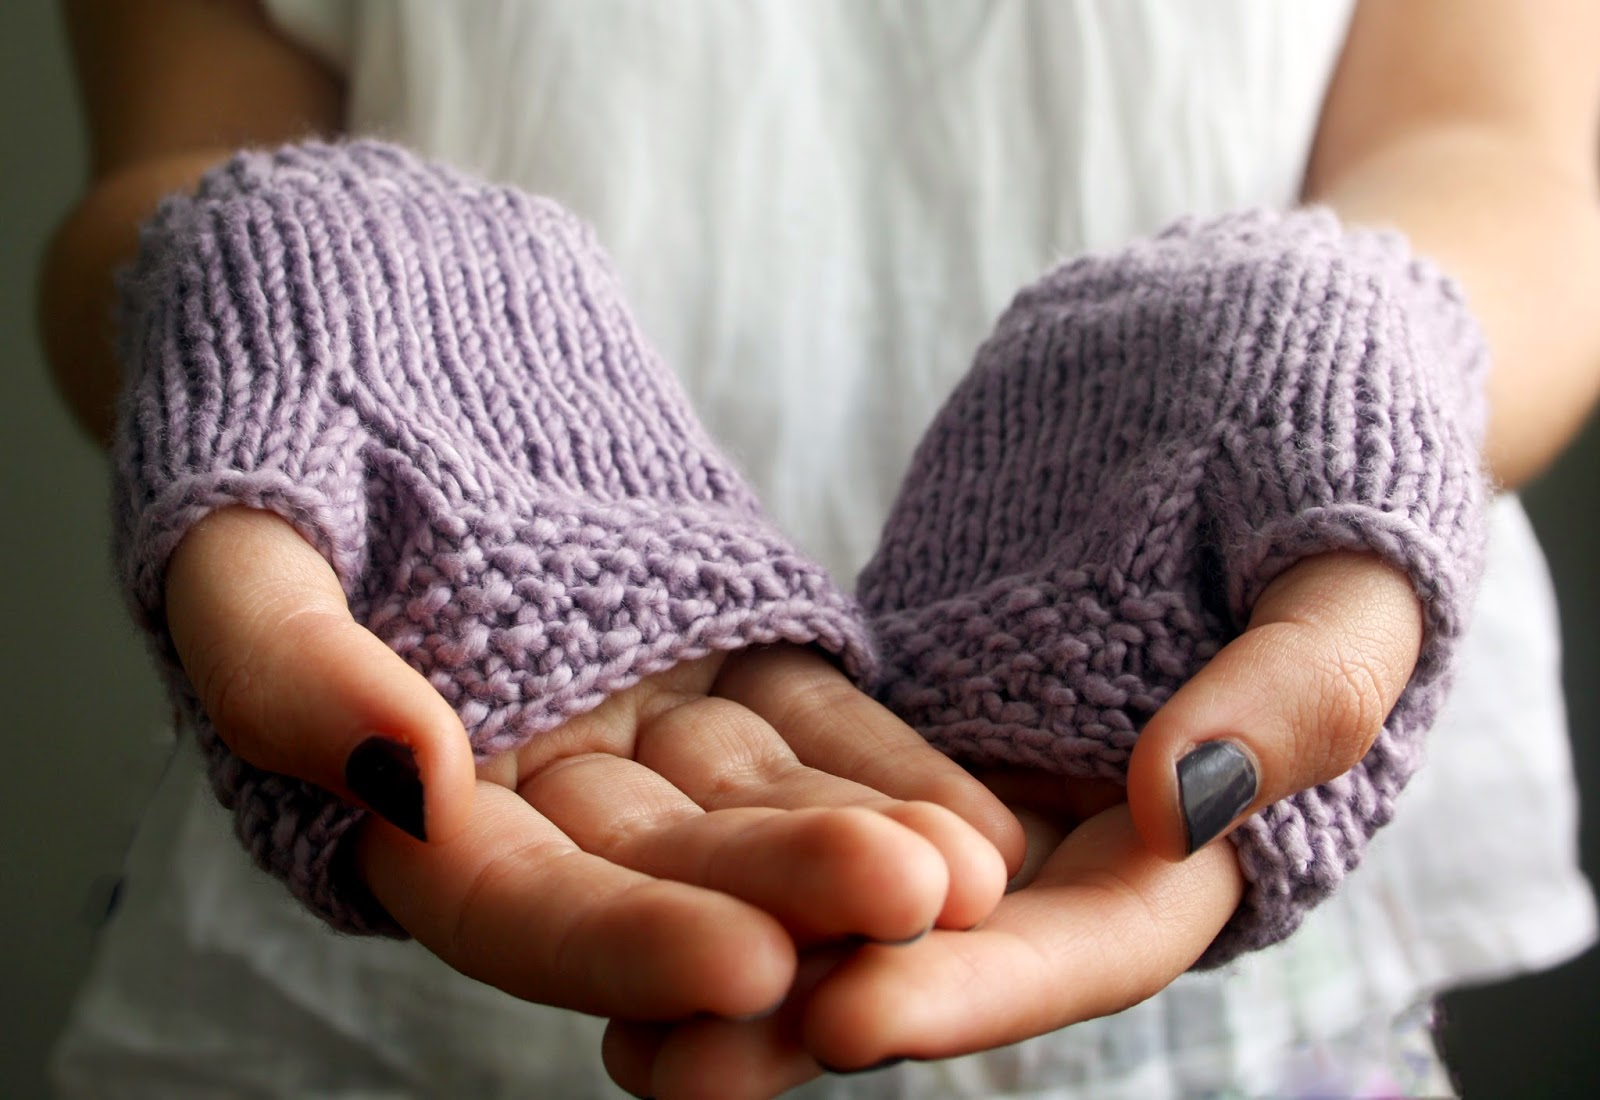 https://www.etsy.com/au/listing/184363231/organic-cotton-fingerless-gloves-handkit?ref=shop_home_active_6